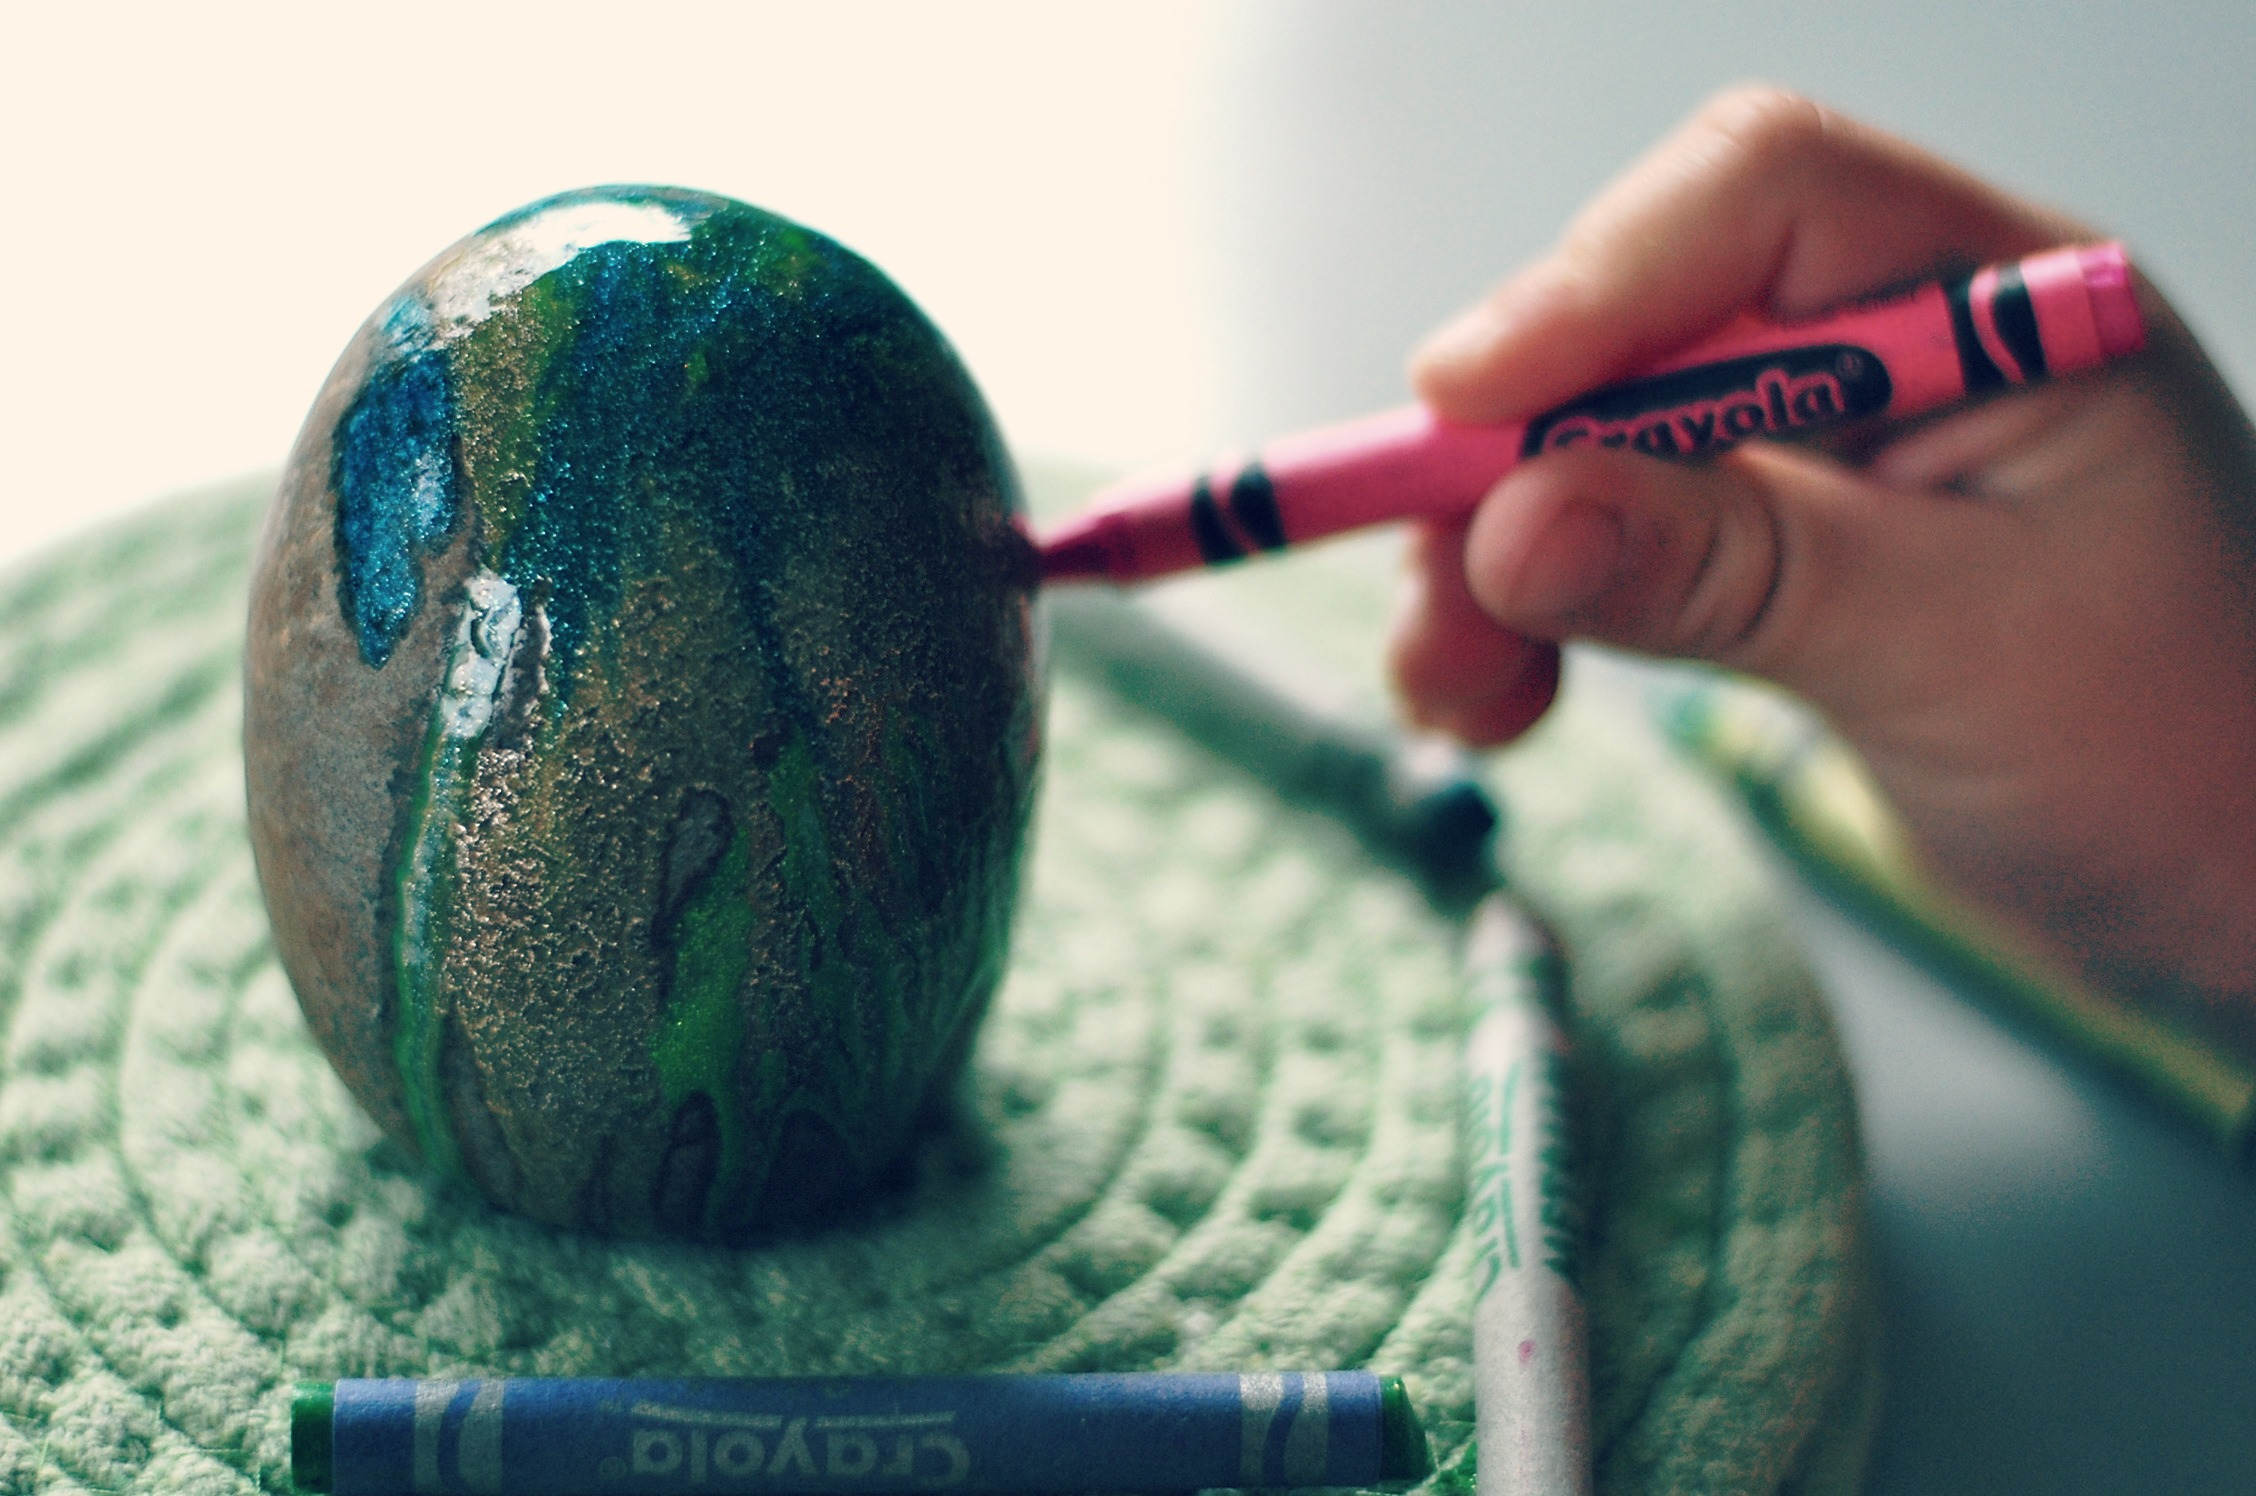 how to: paint rocks with crayons